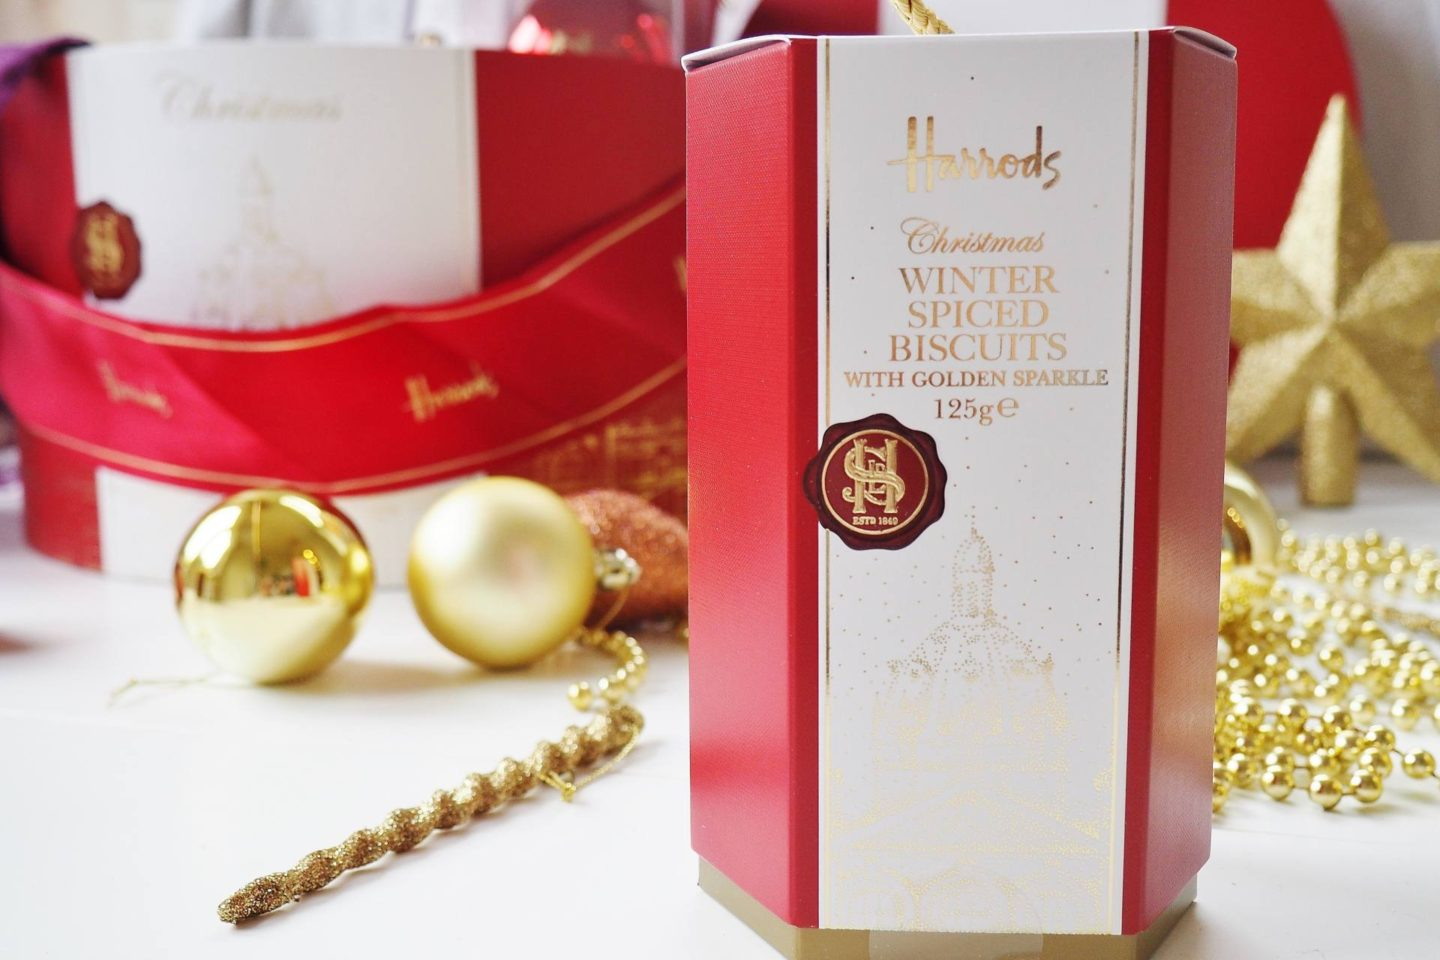 Emma Victoria Stokes Harrods Christmas Hamper Box Blog Review